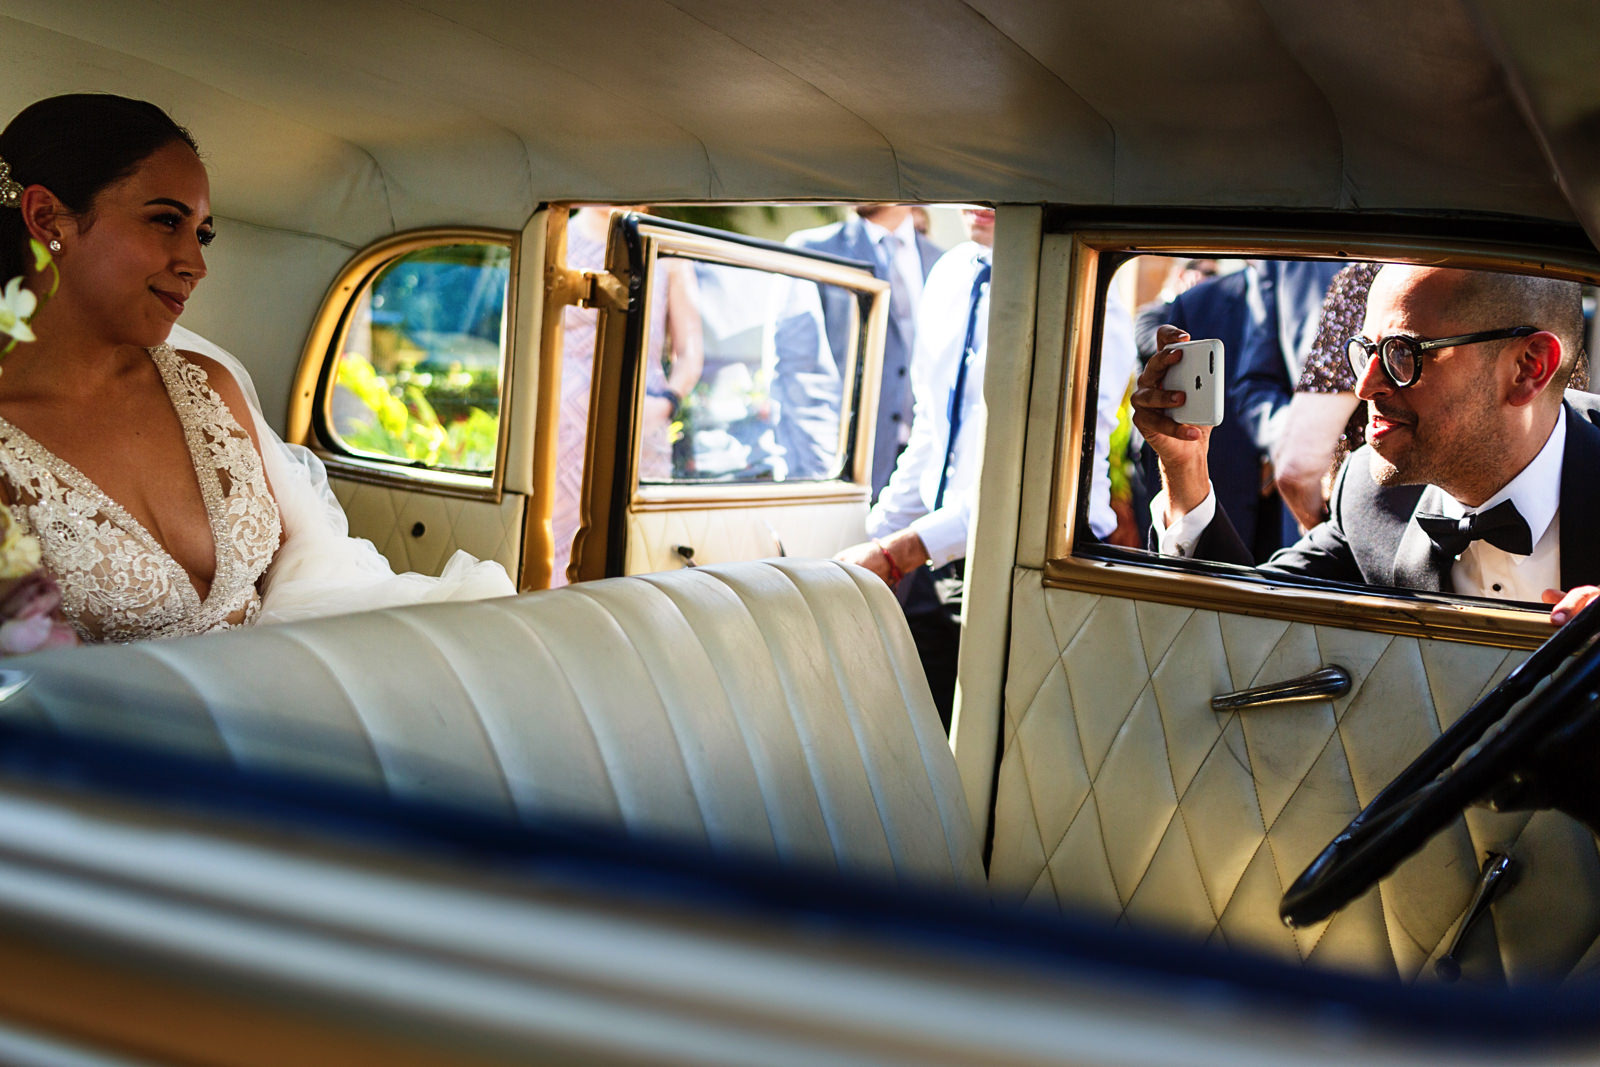 Brother-in-law snaps a photo of the bride inside the classic car after the wedding ceremony